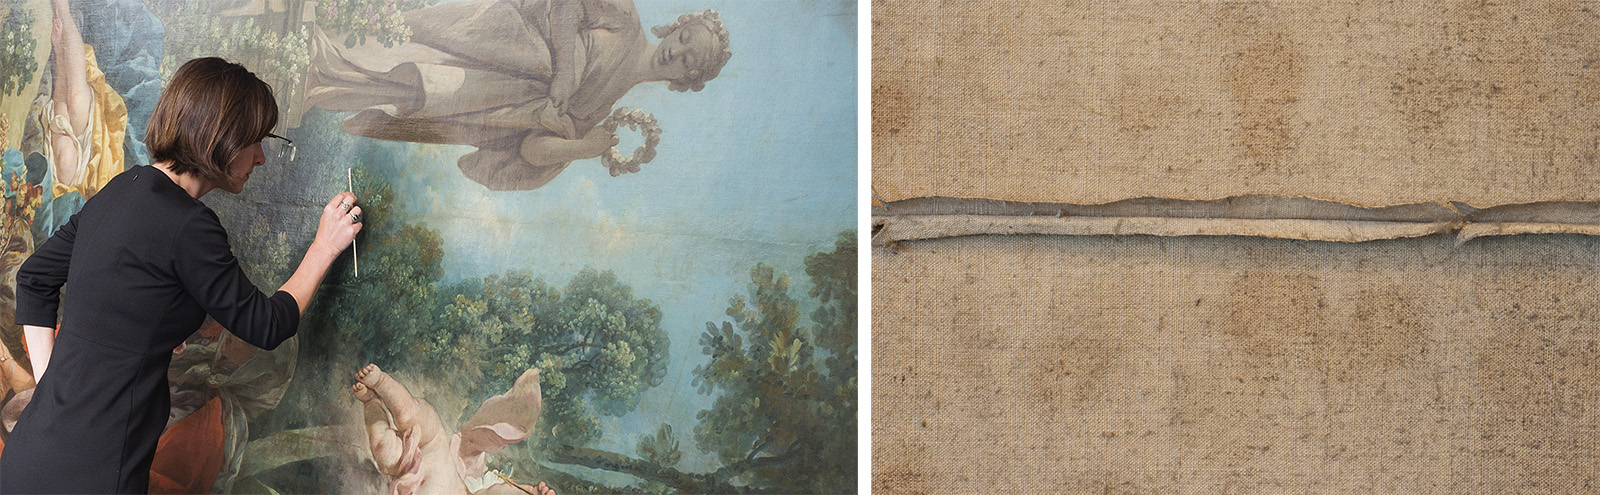 At left, a female conservator wearing magnifying glasses works on a large, colorful painting that is turned on its side. At right is a close-up of a seam on the back of the canvas.